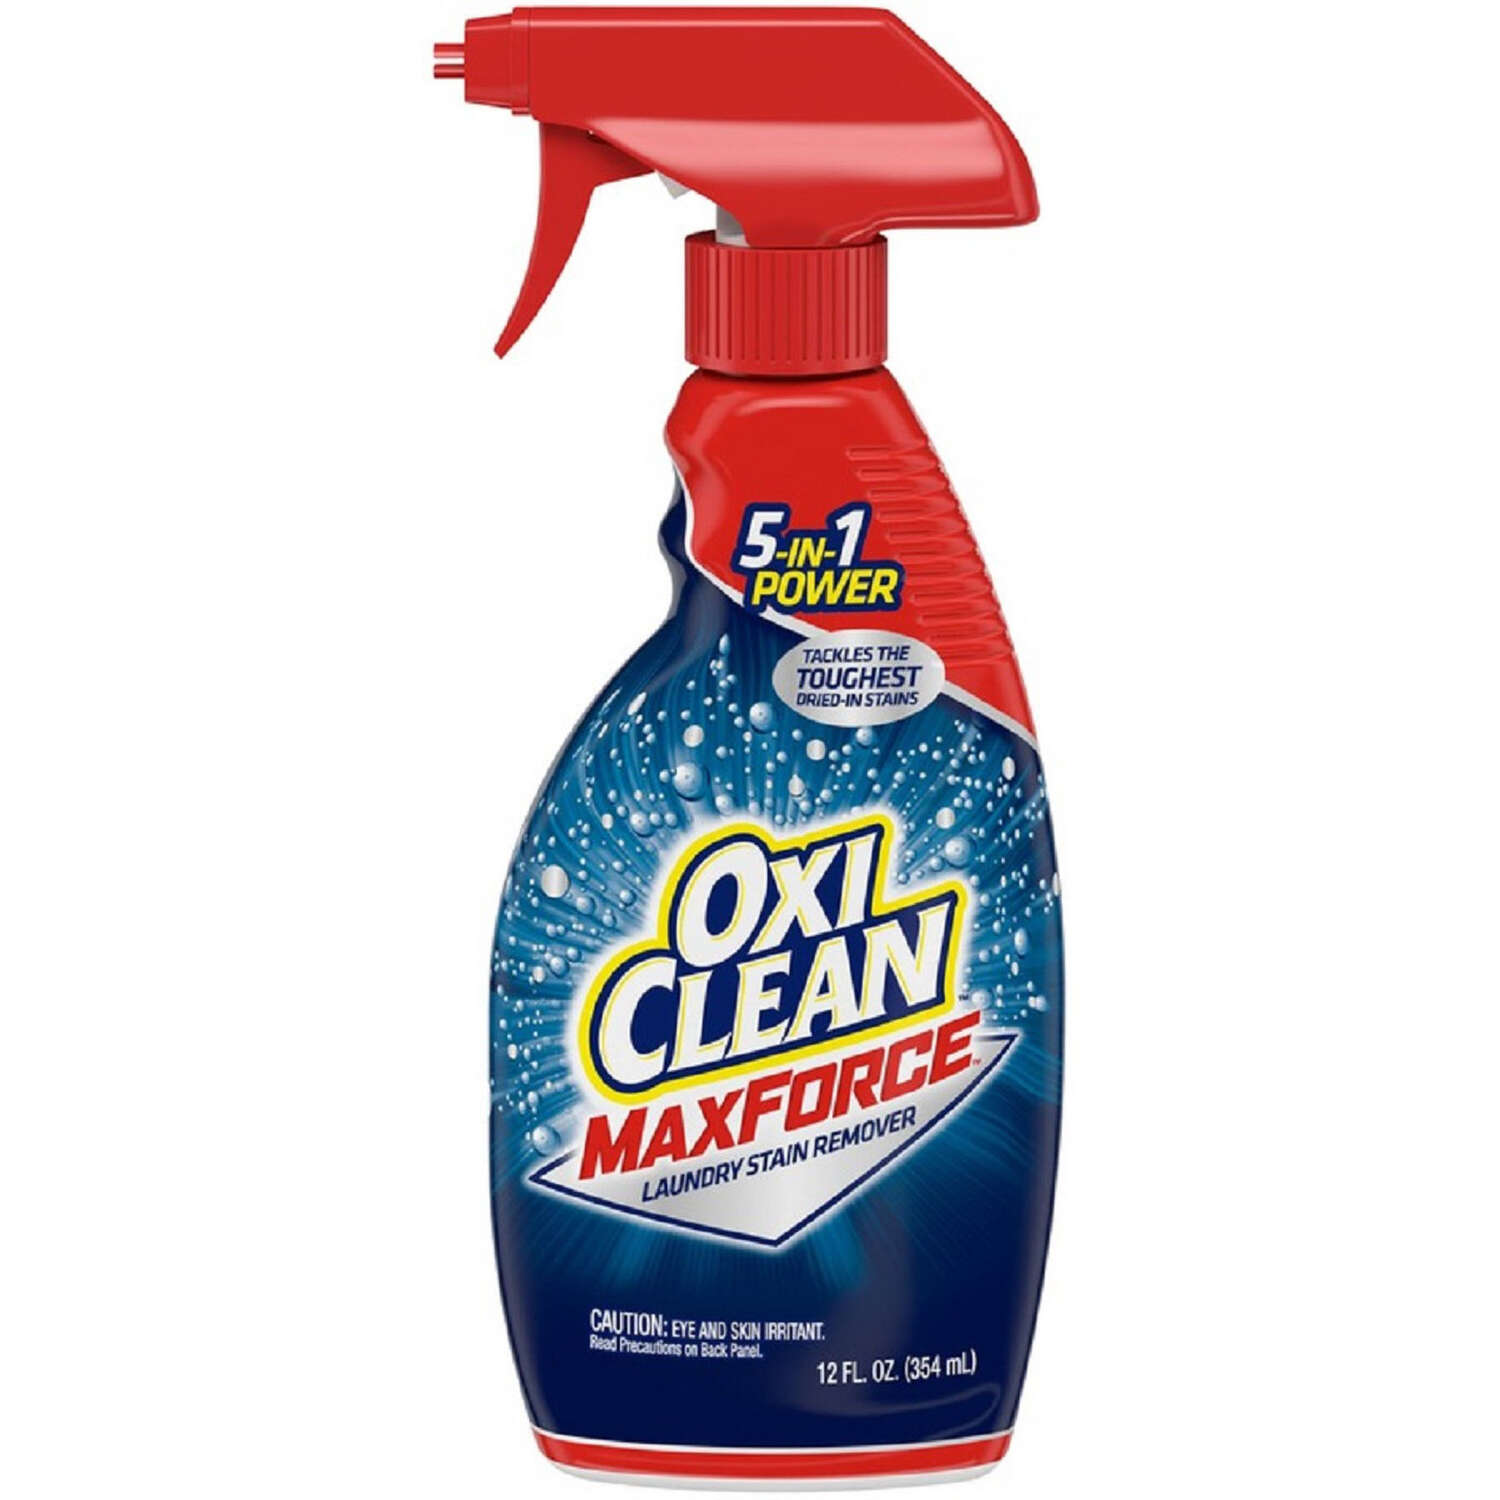 OxiClean  No Scent Laundry Stain Remover  Liquid  12 oz.